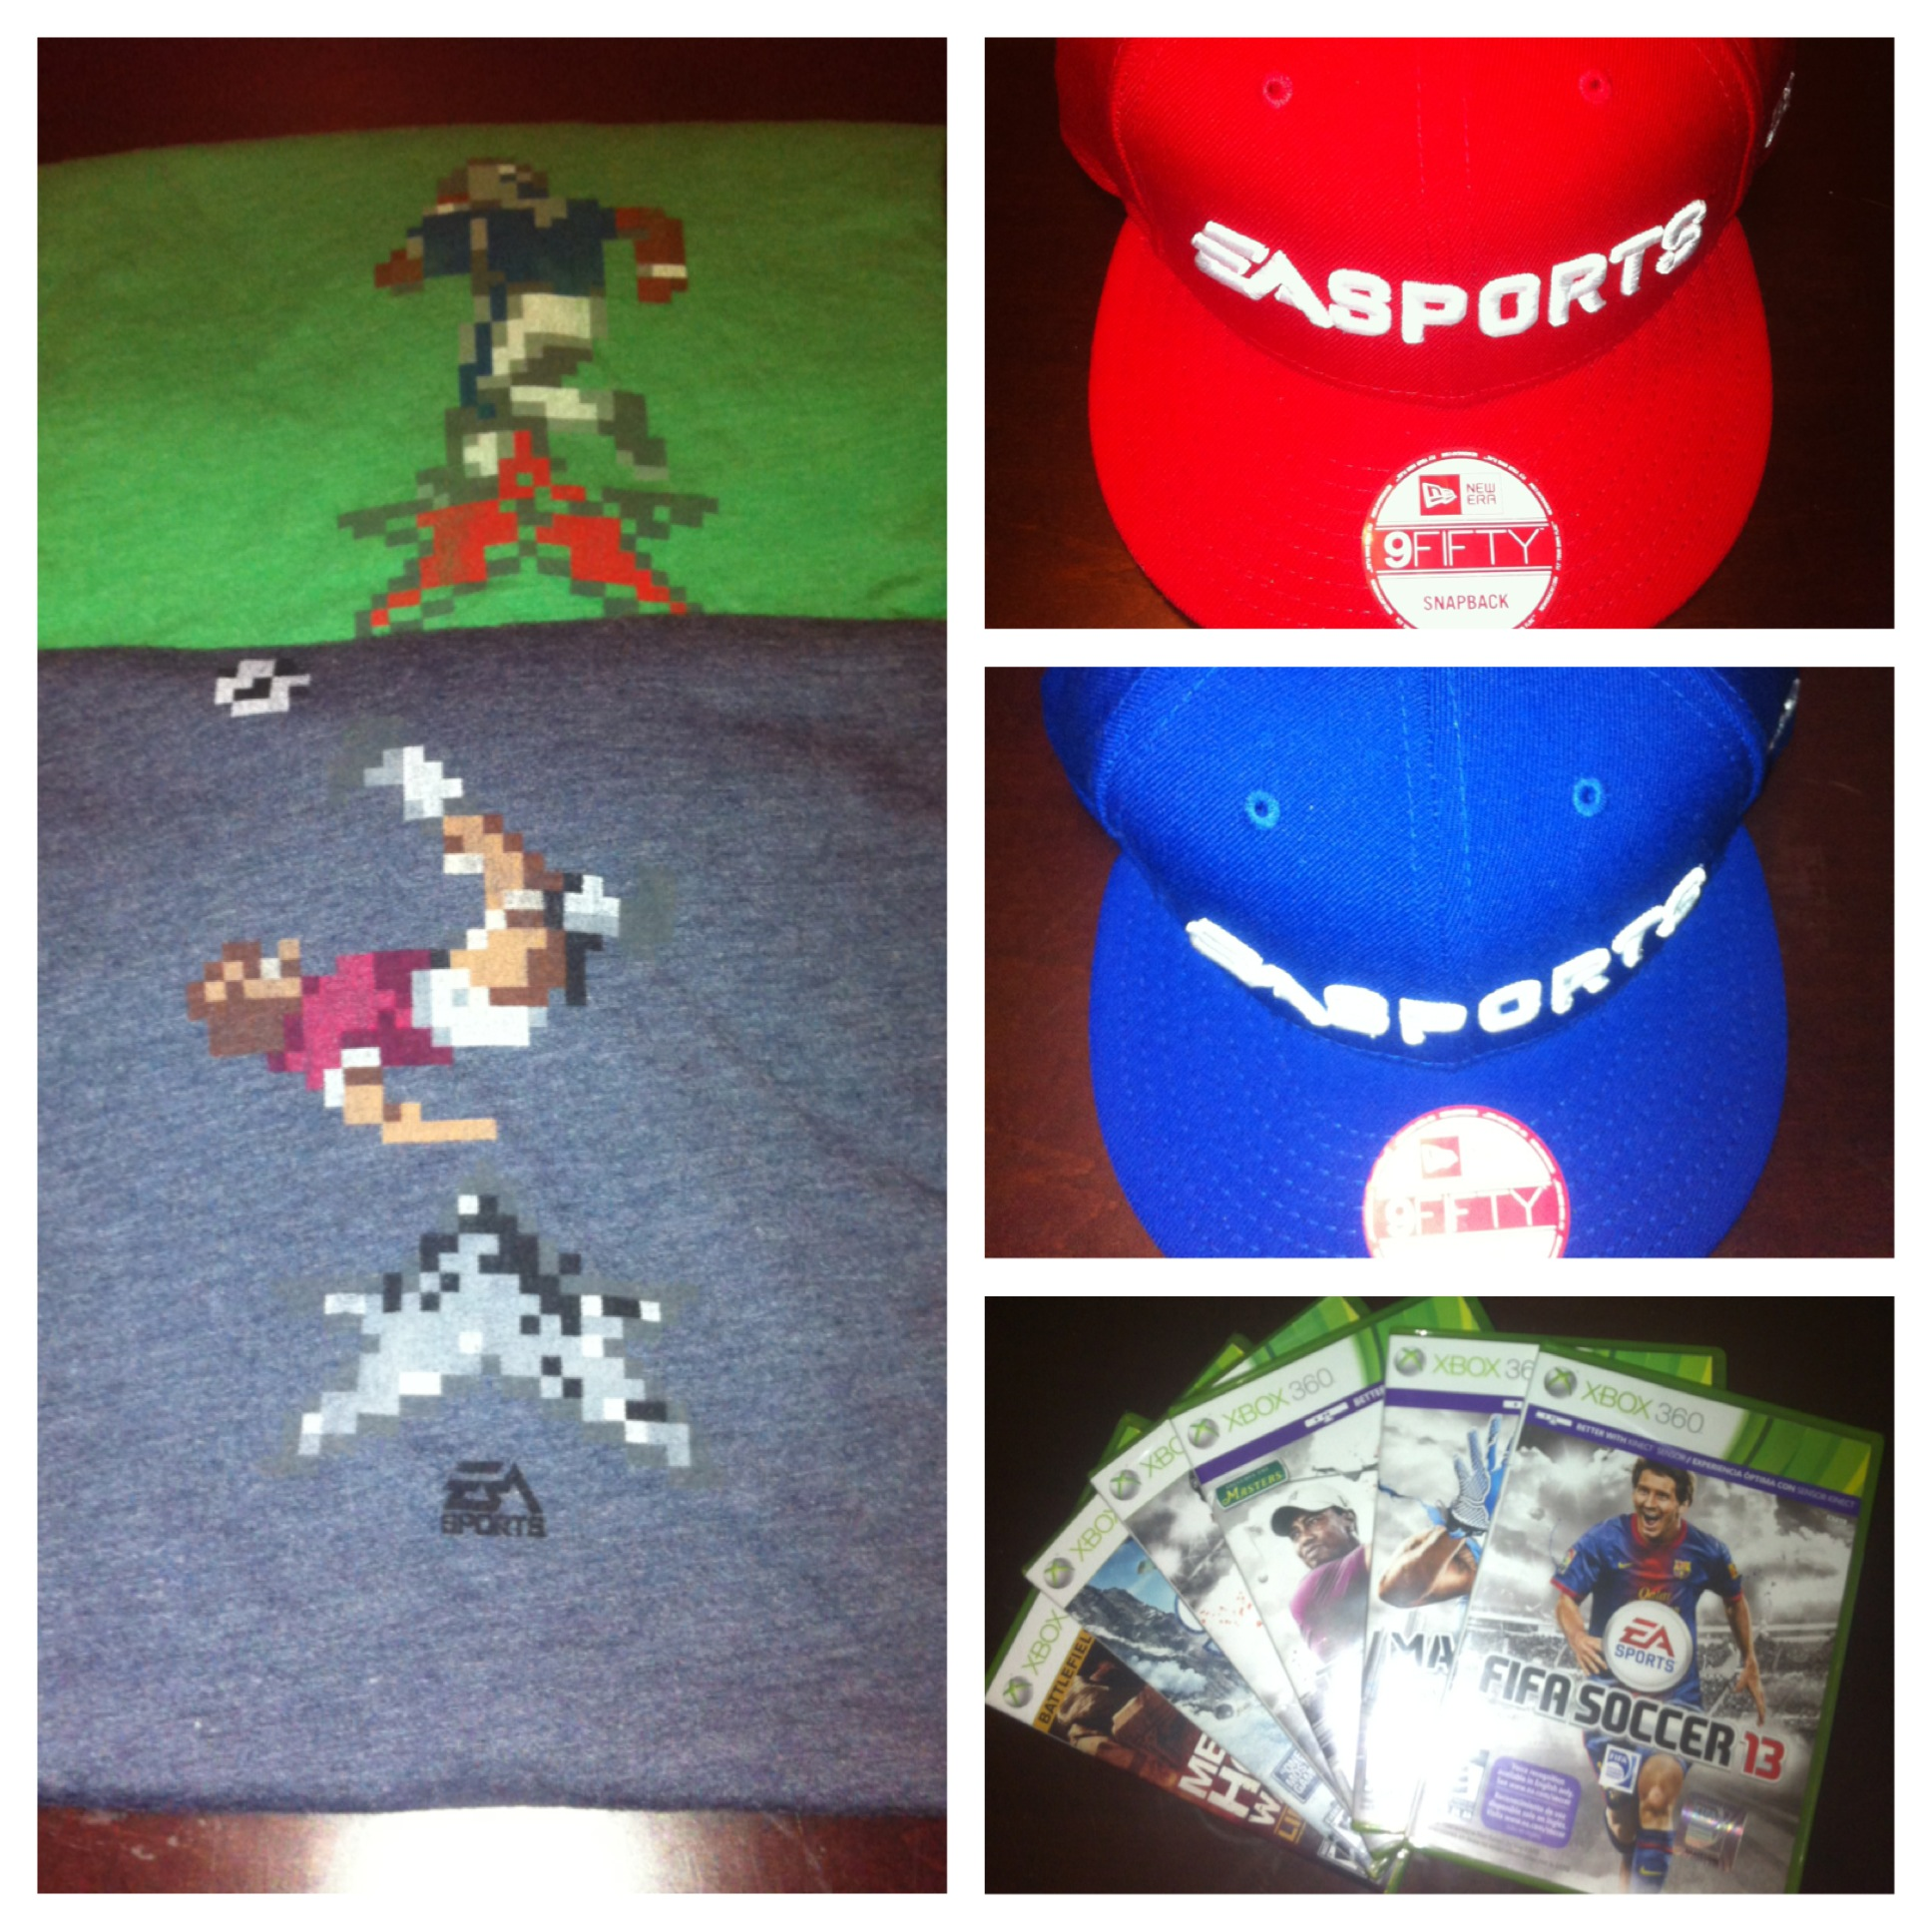 EA SPORTS GIVEAWAY